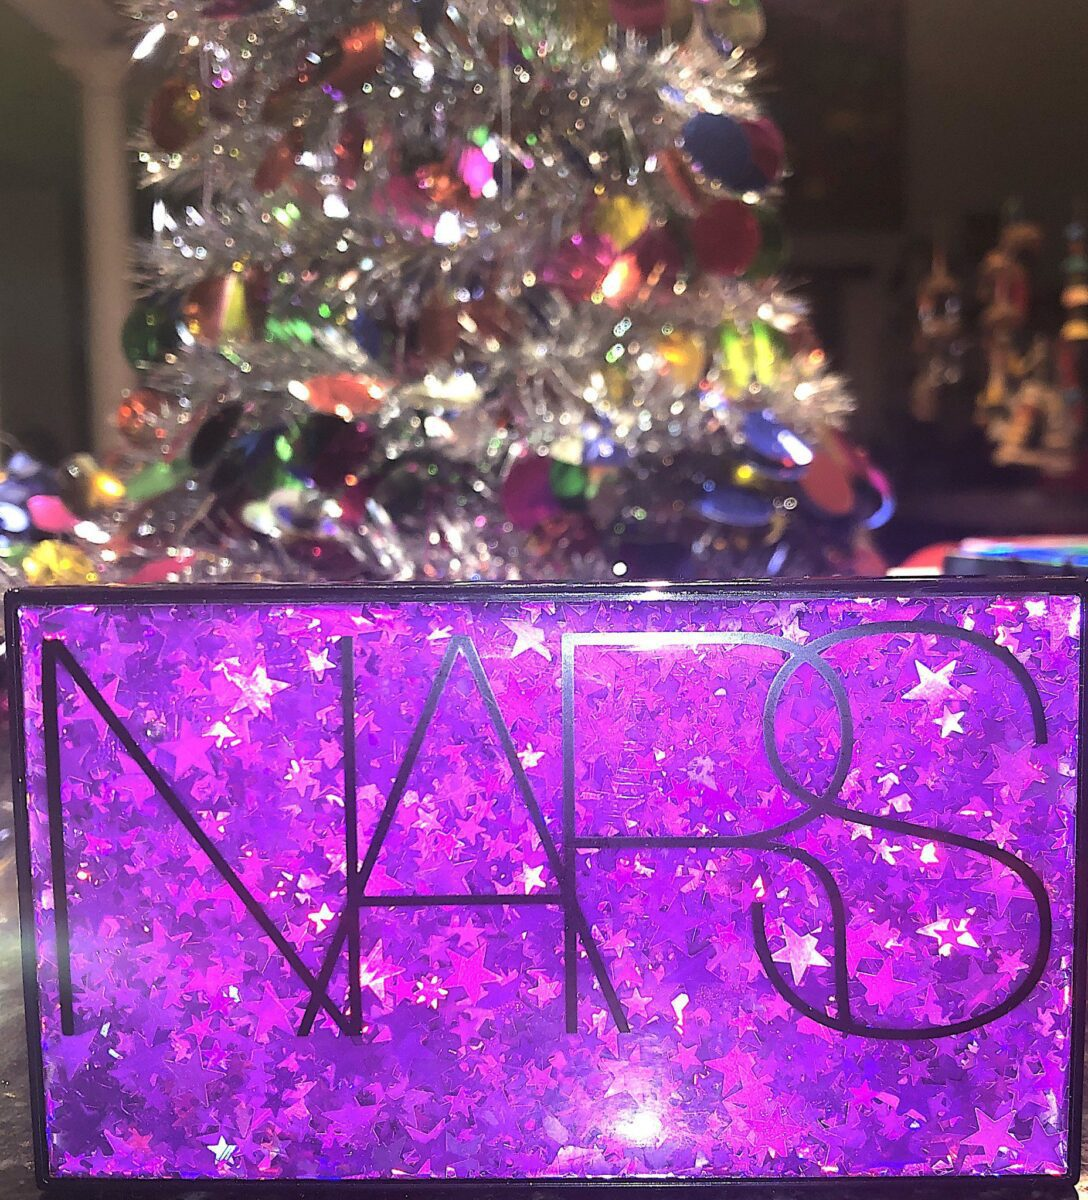 THE FRONT OF THE NARS STUDIO 54 HOLIDAY HYPED EYESHADOW PALETTE